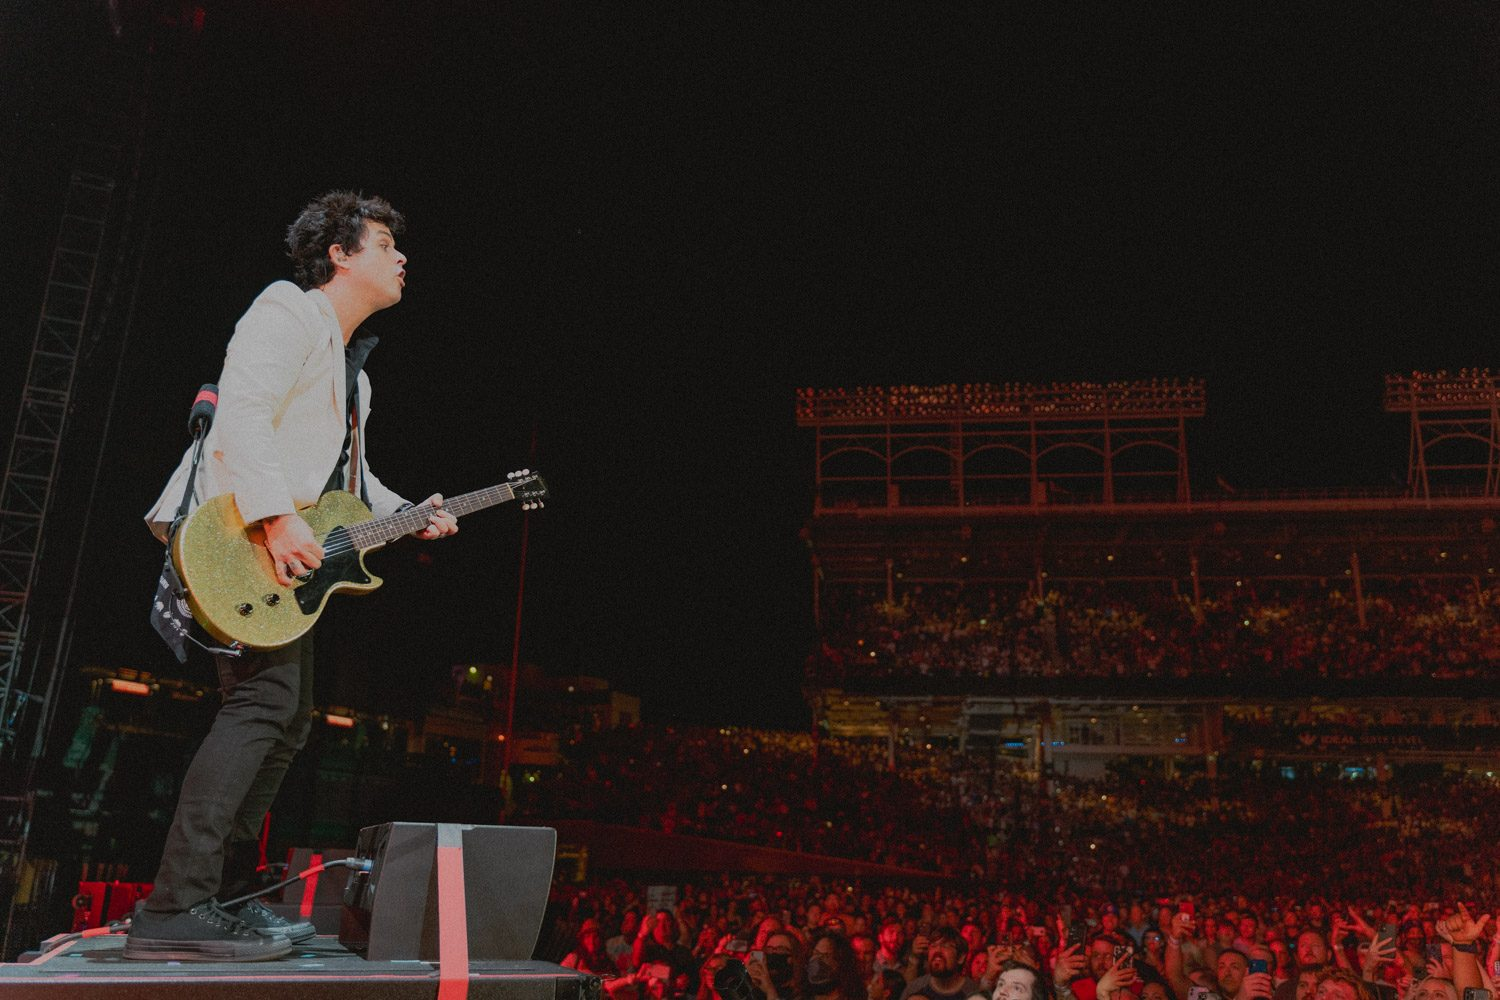 GREEN DAY - Chicago, IL - August 15th, 2021